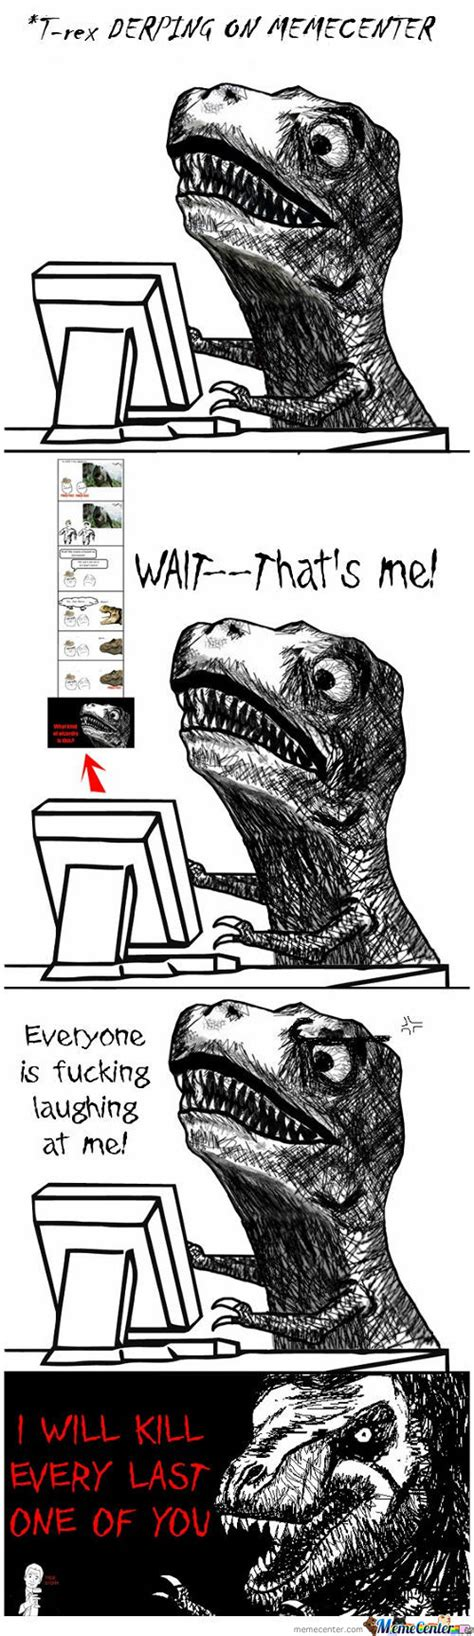 T Rex Meme - t rex memes best collection of funny t rex pictures